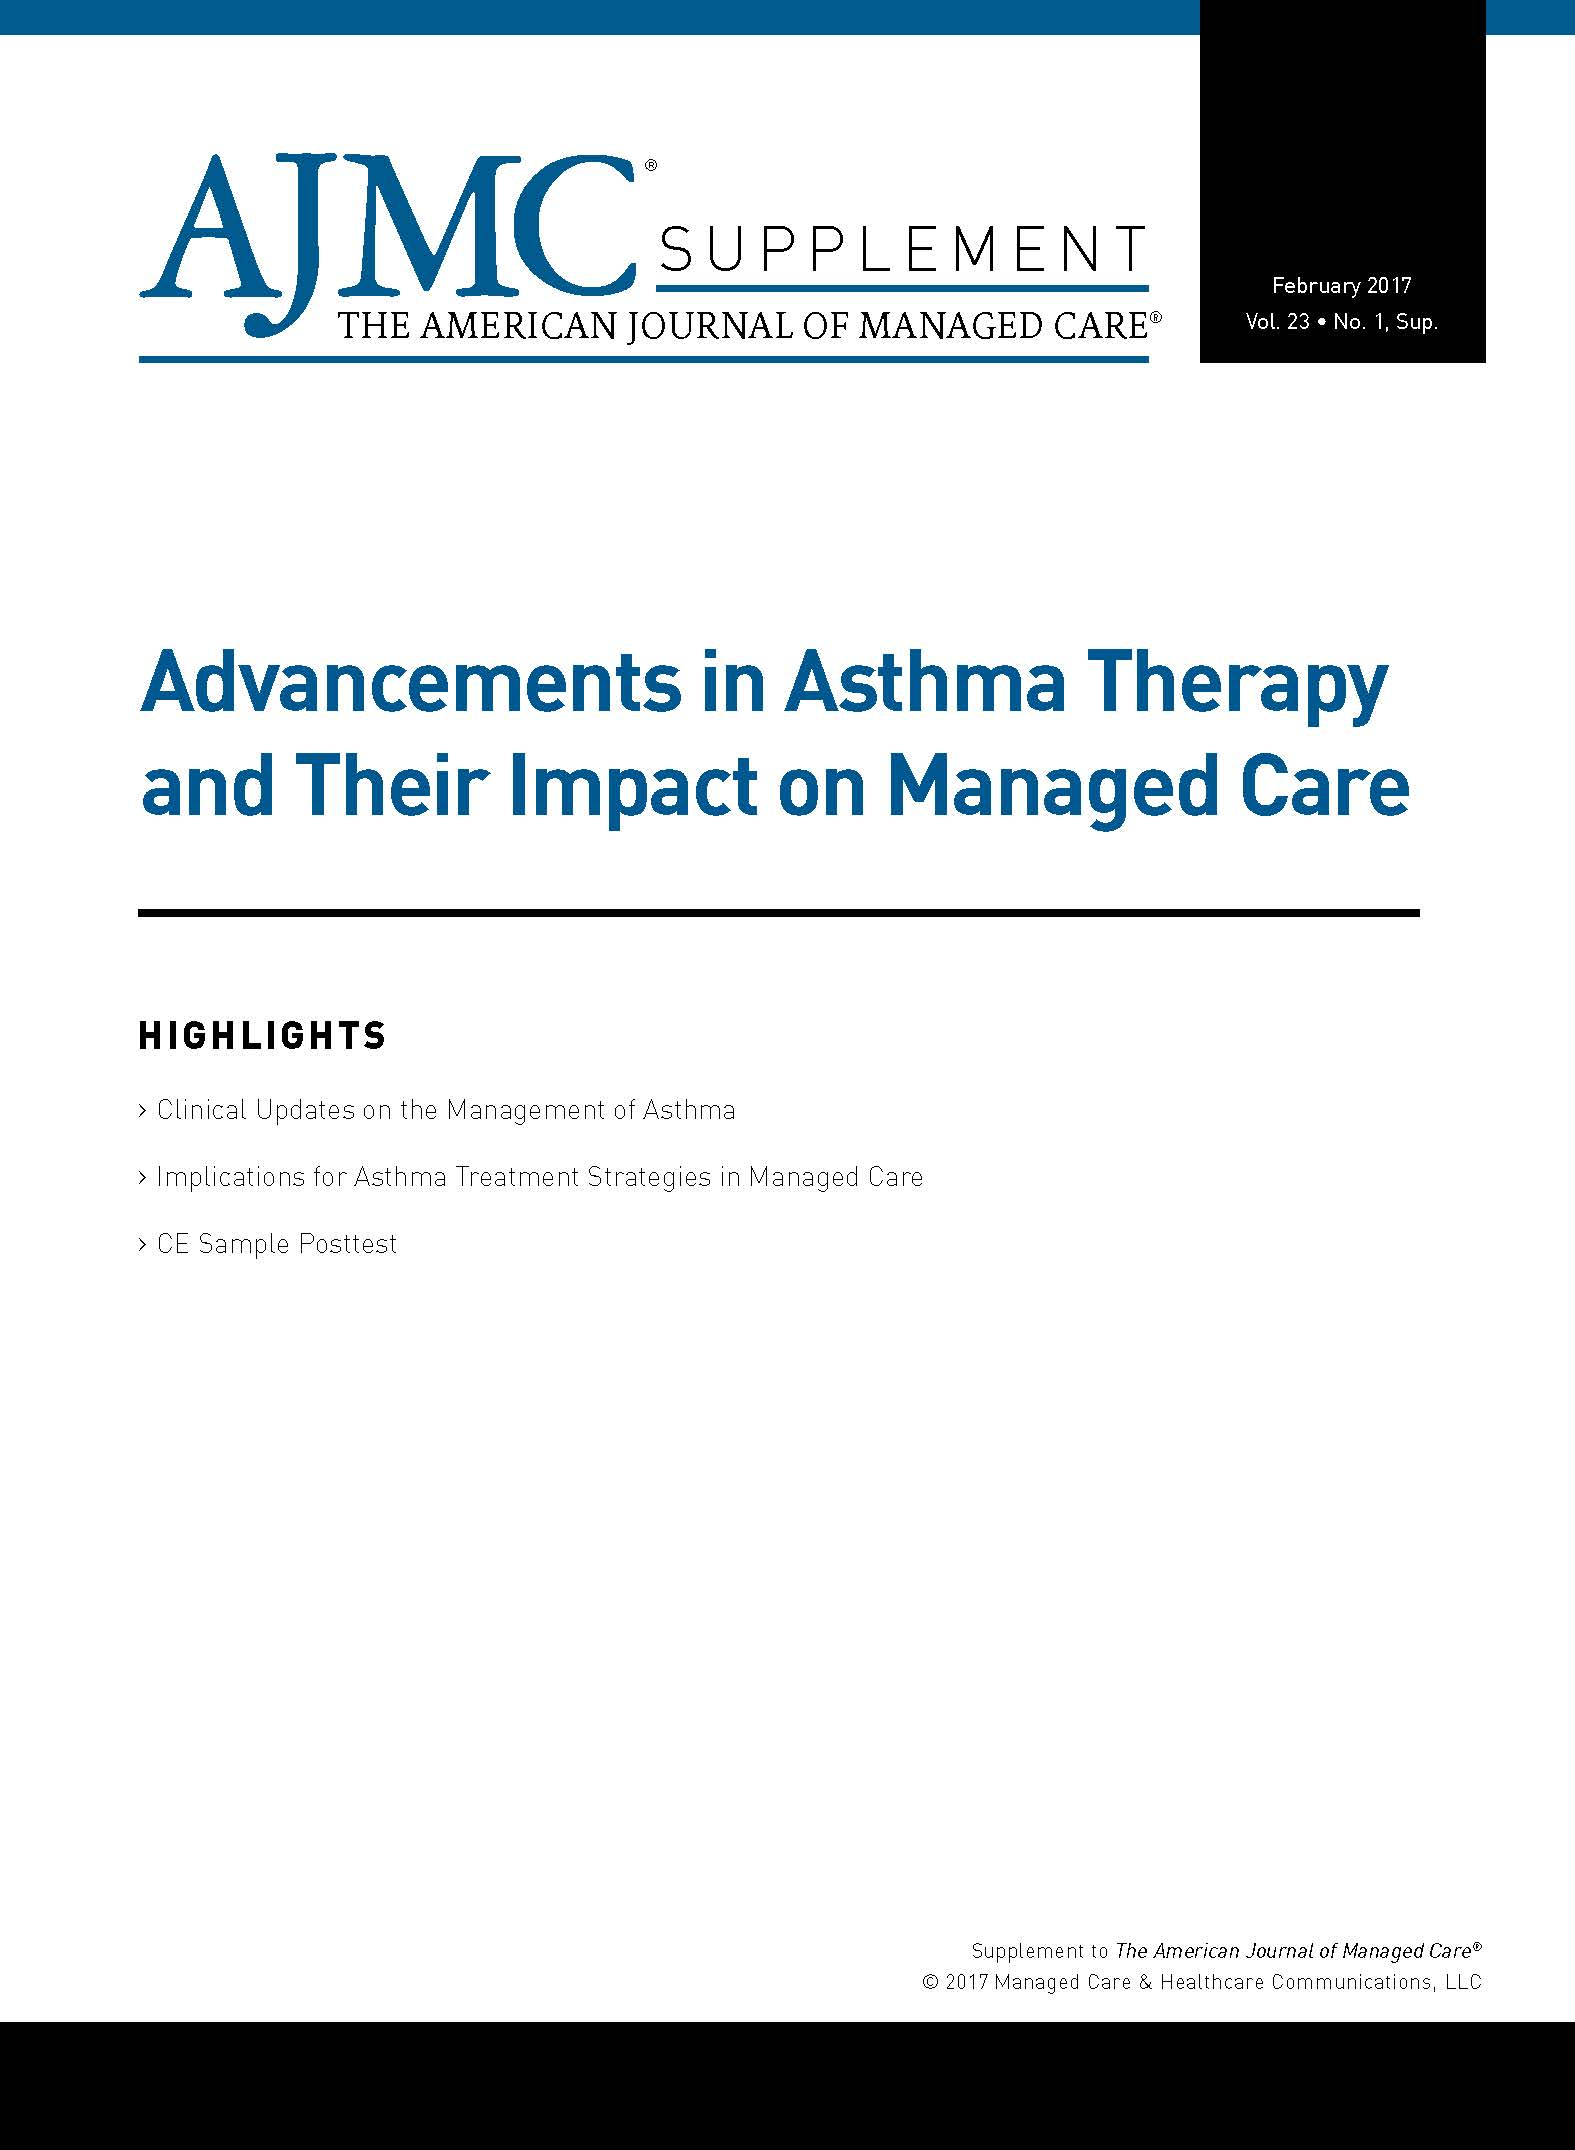 Advancements in Asthma Therapy and Their Impact on Managed Care